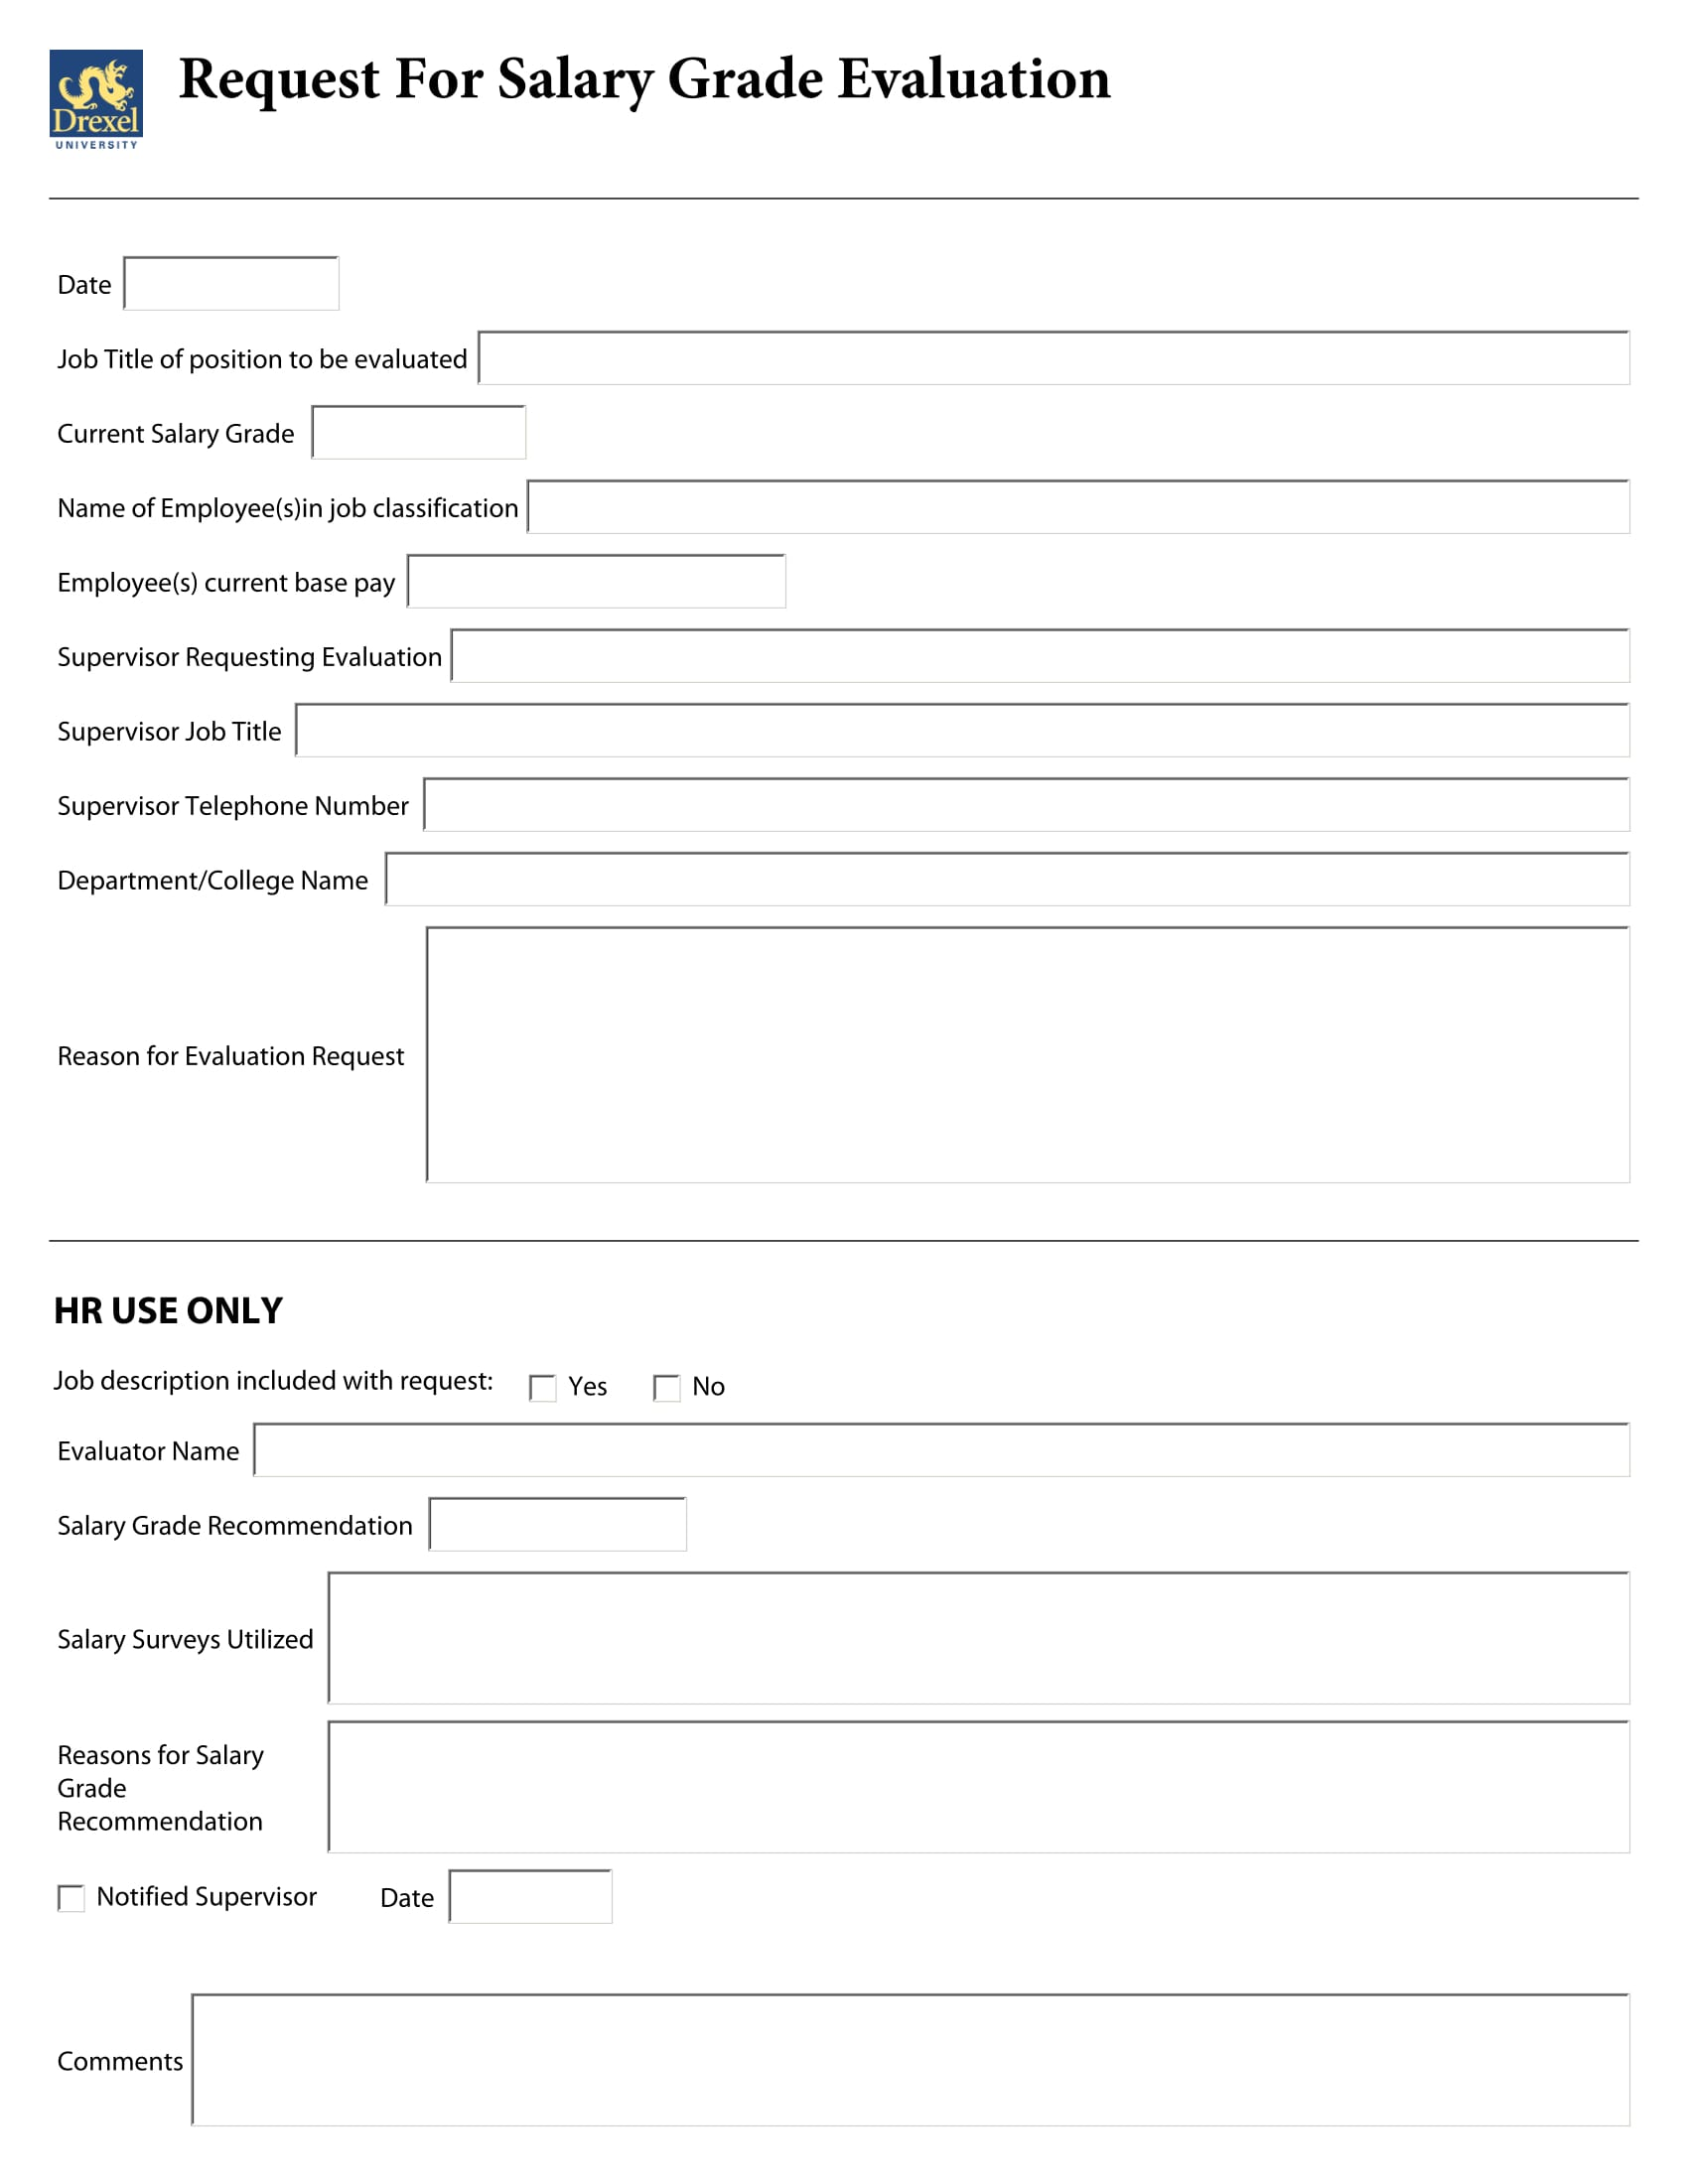 salary grade evaluation form 2